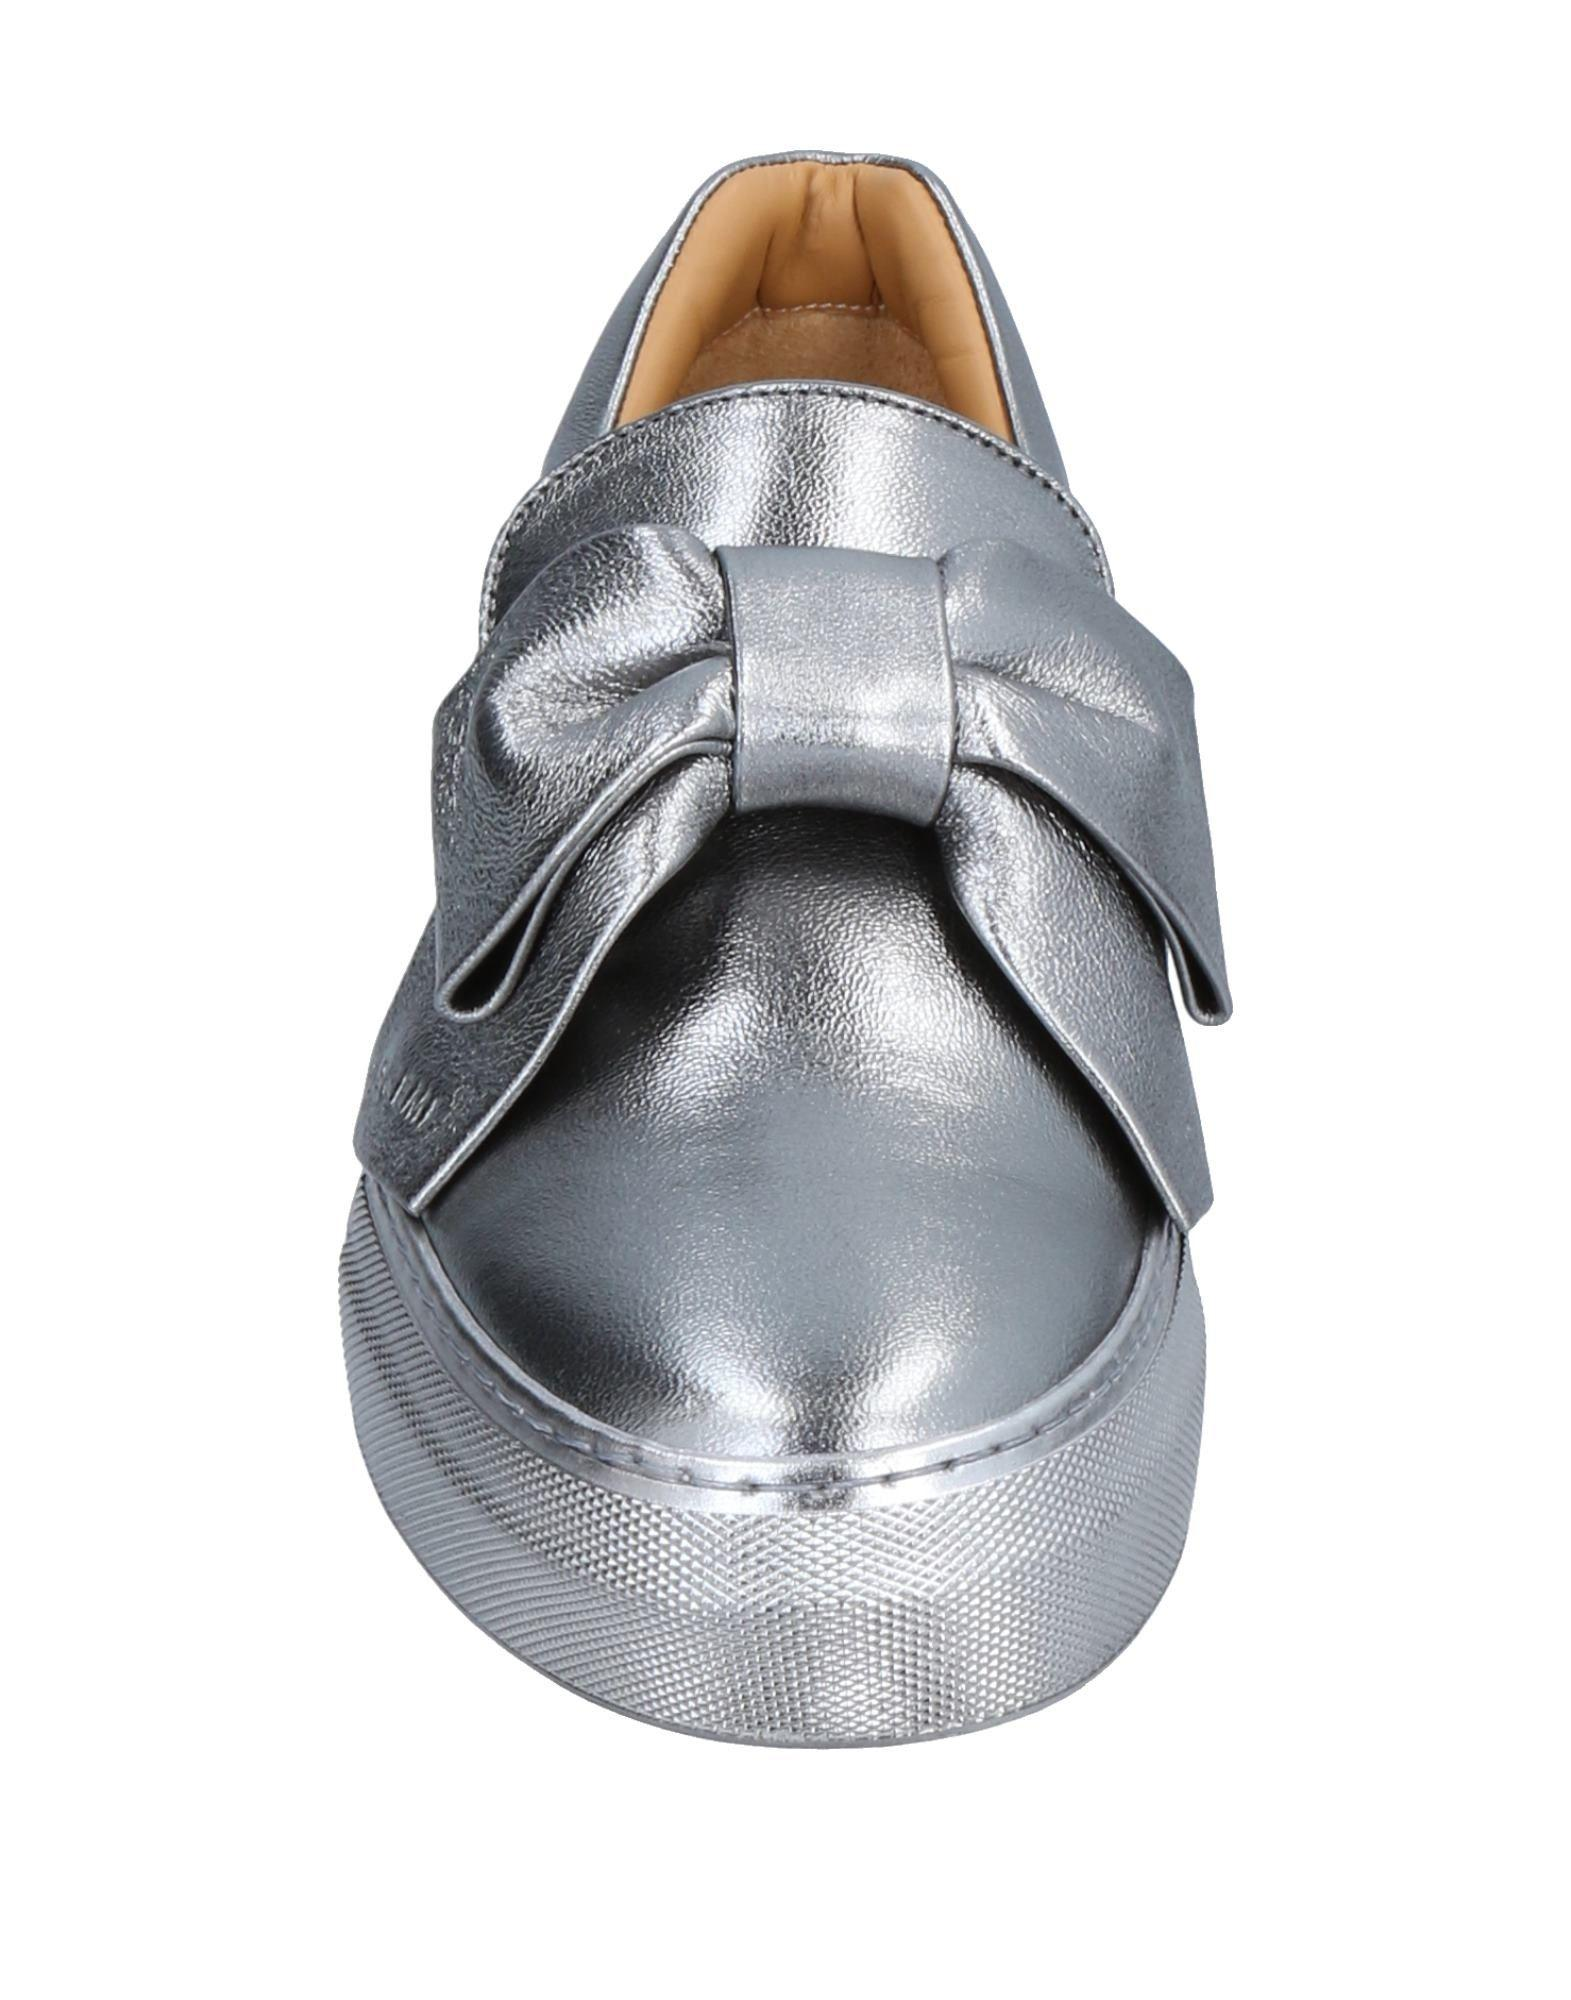 Buscemi Leather Low-tops & Sneakers in Silver (Metallic)